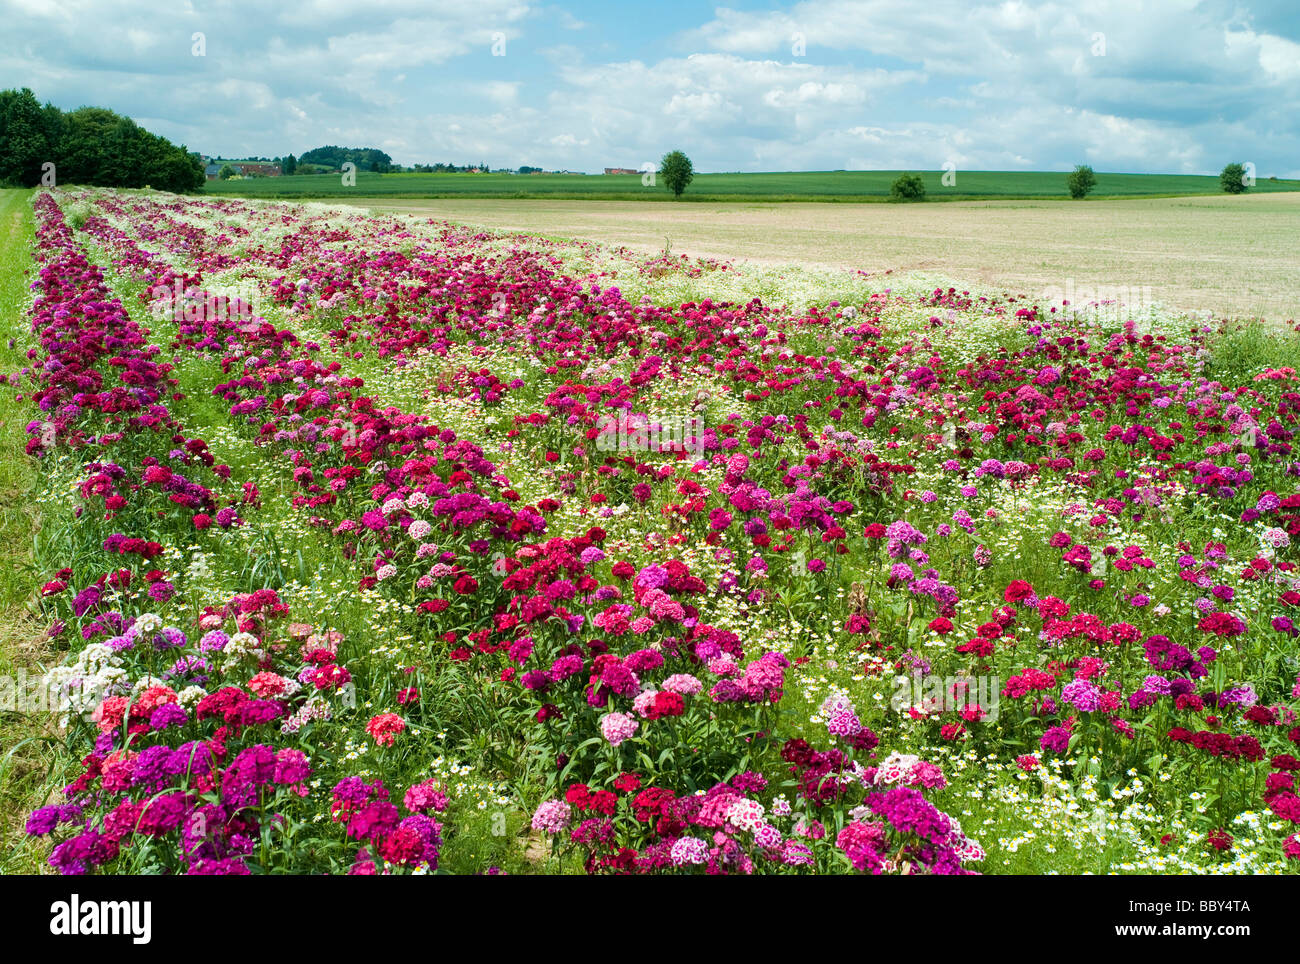 A field with Sweet williams (Dianthus barbatus) and Daisies (Leucanthemum), Hesse, Germany - Stock Image